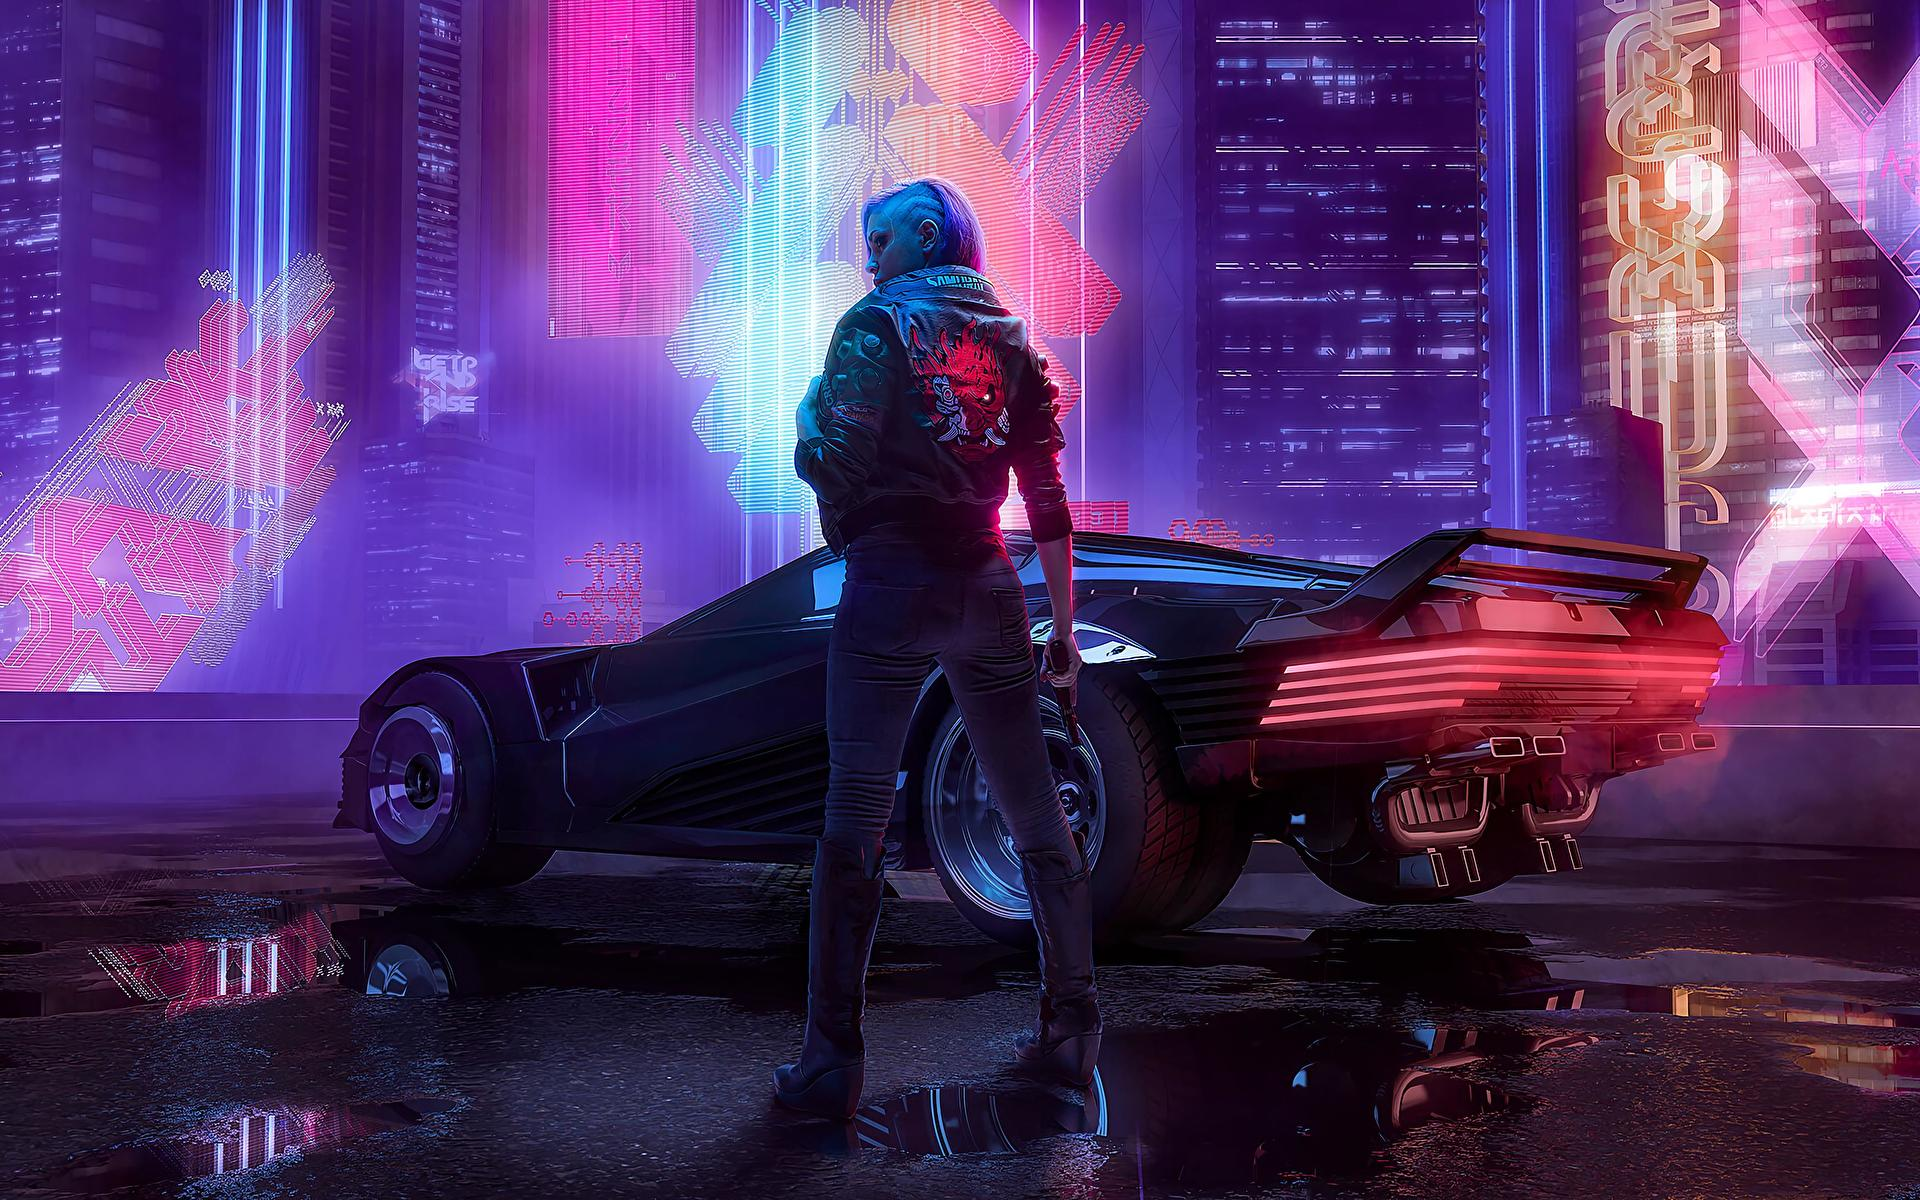 Cyberpunk 2077 [3840x2160] : Wallpapers